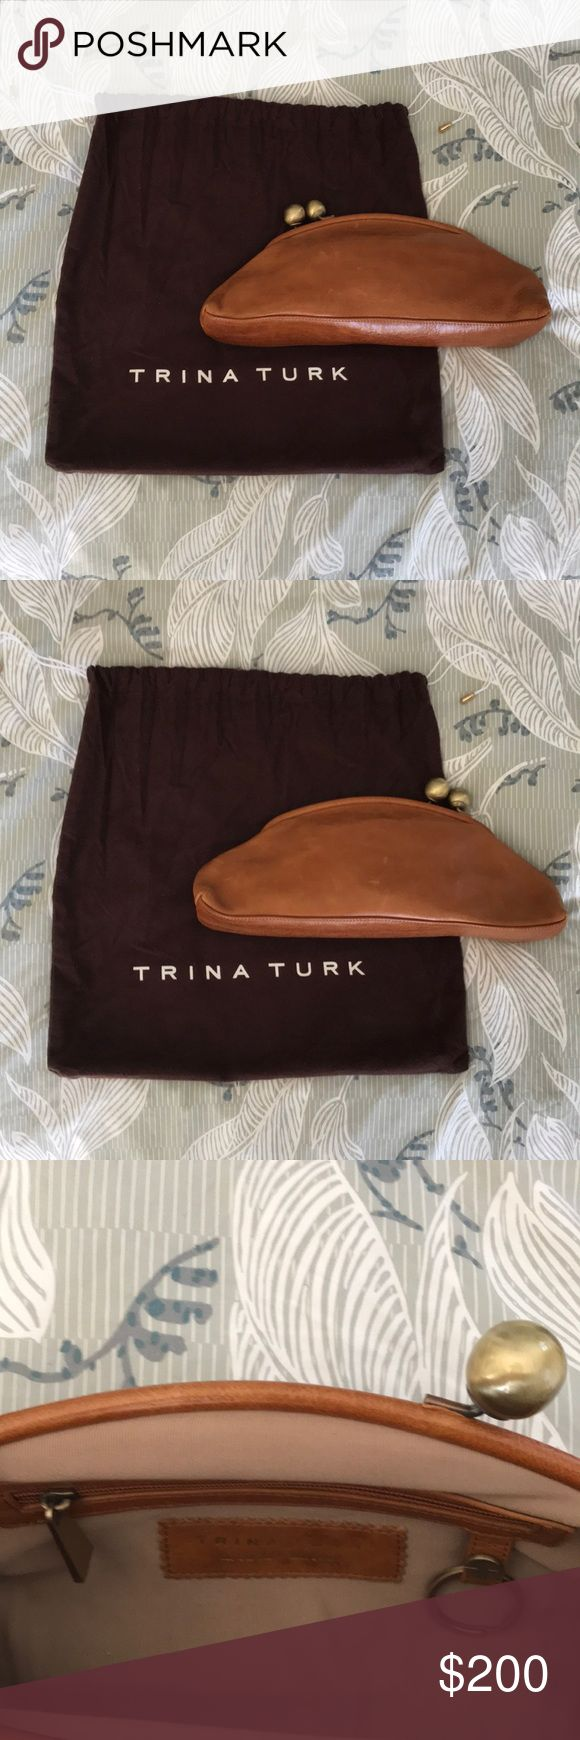 Trina Turk Leather Clutch NWOT Gorgeous Leather Clutch with interior zip pocket, key holder, and handheld mirror with pocket. Slight wear on closure is how the bag came. NWOT Trina Turk Bags Clutches & Wristlets